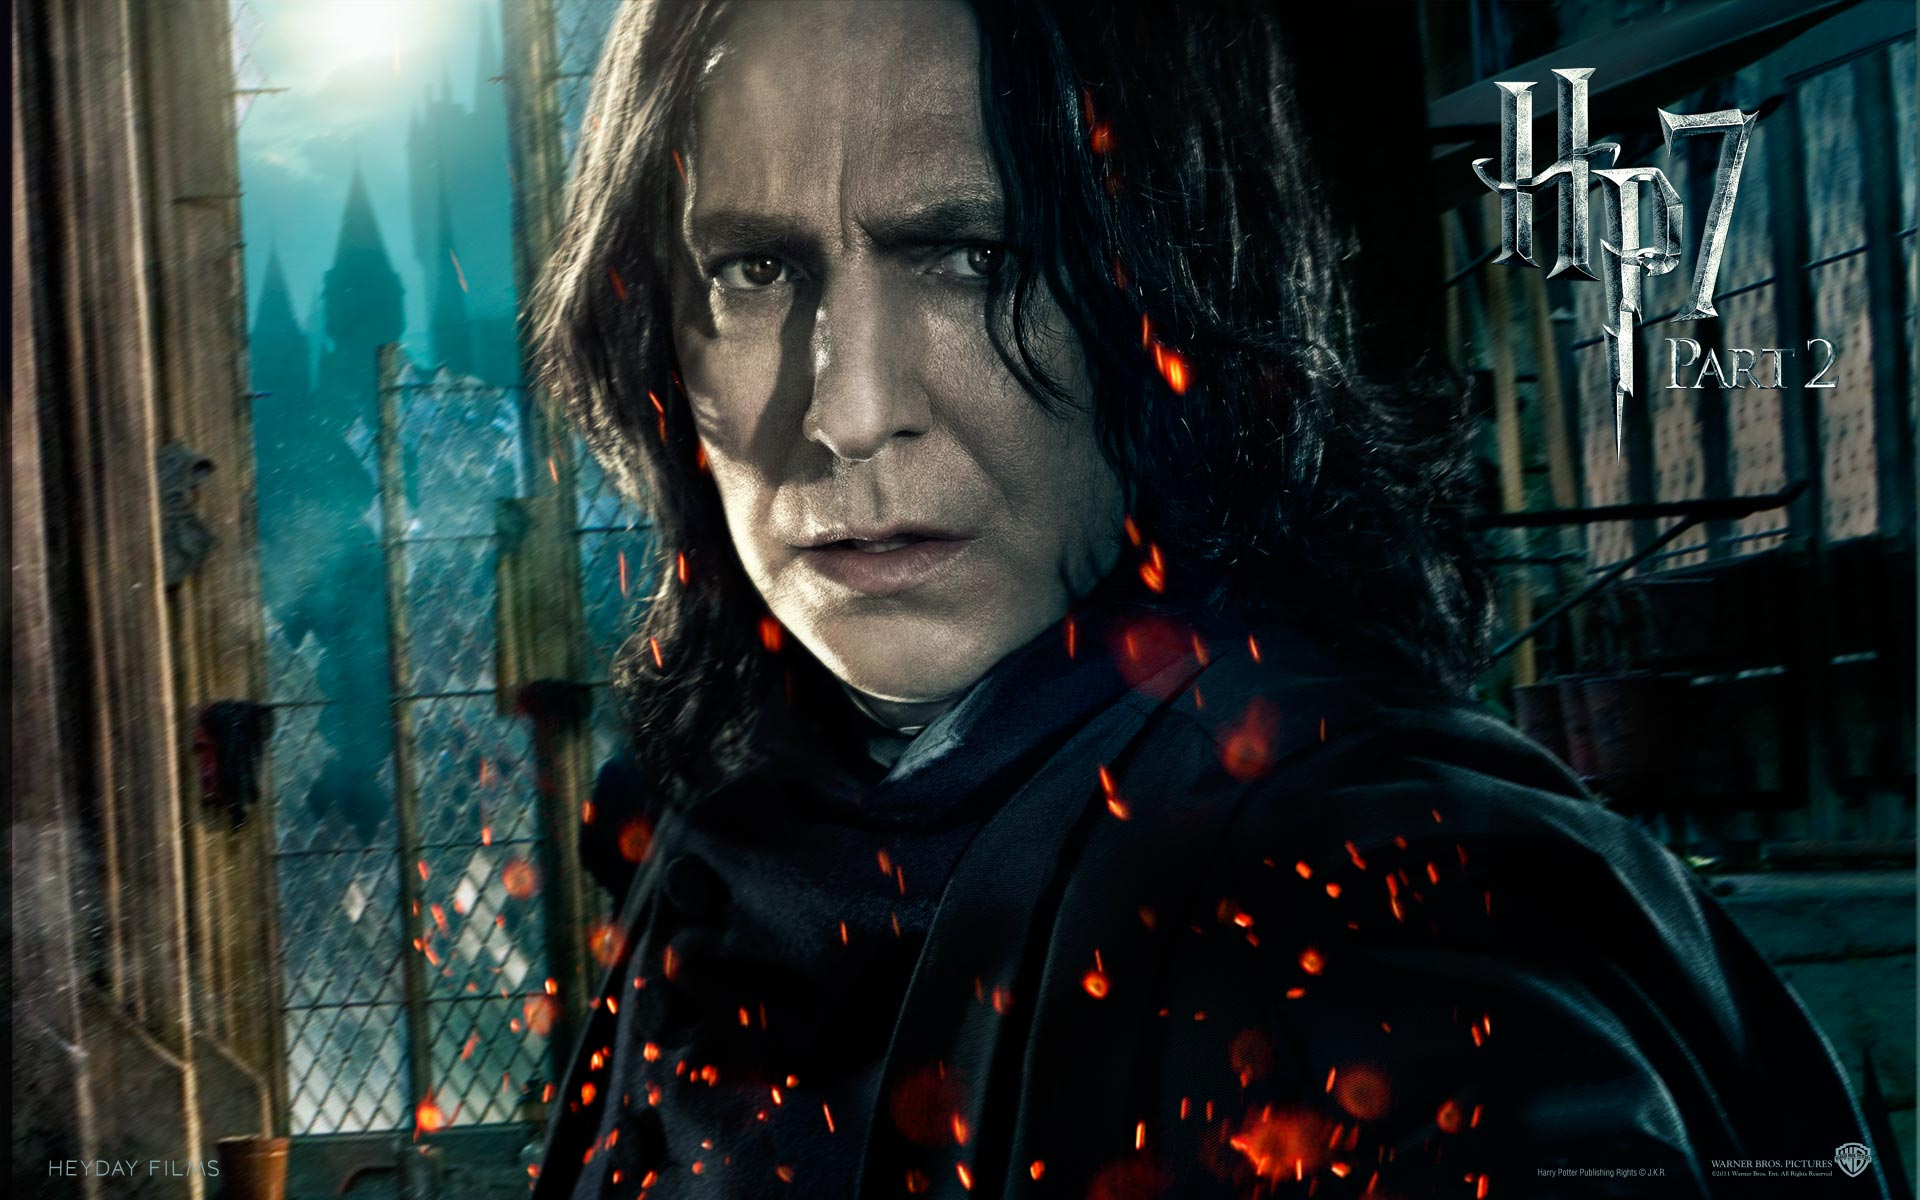 Wallpaper HP7 Professor Severus Snape Harry Potter